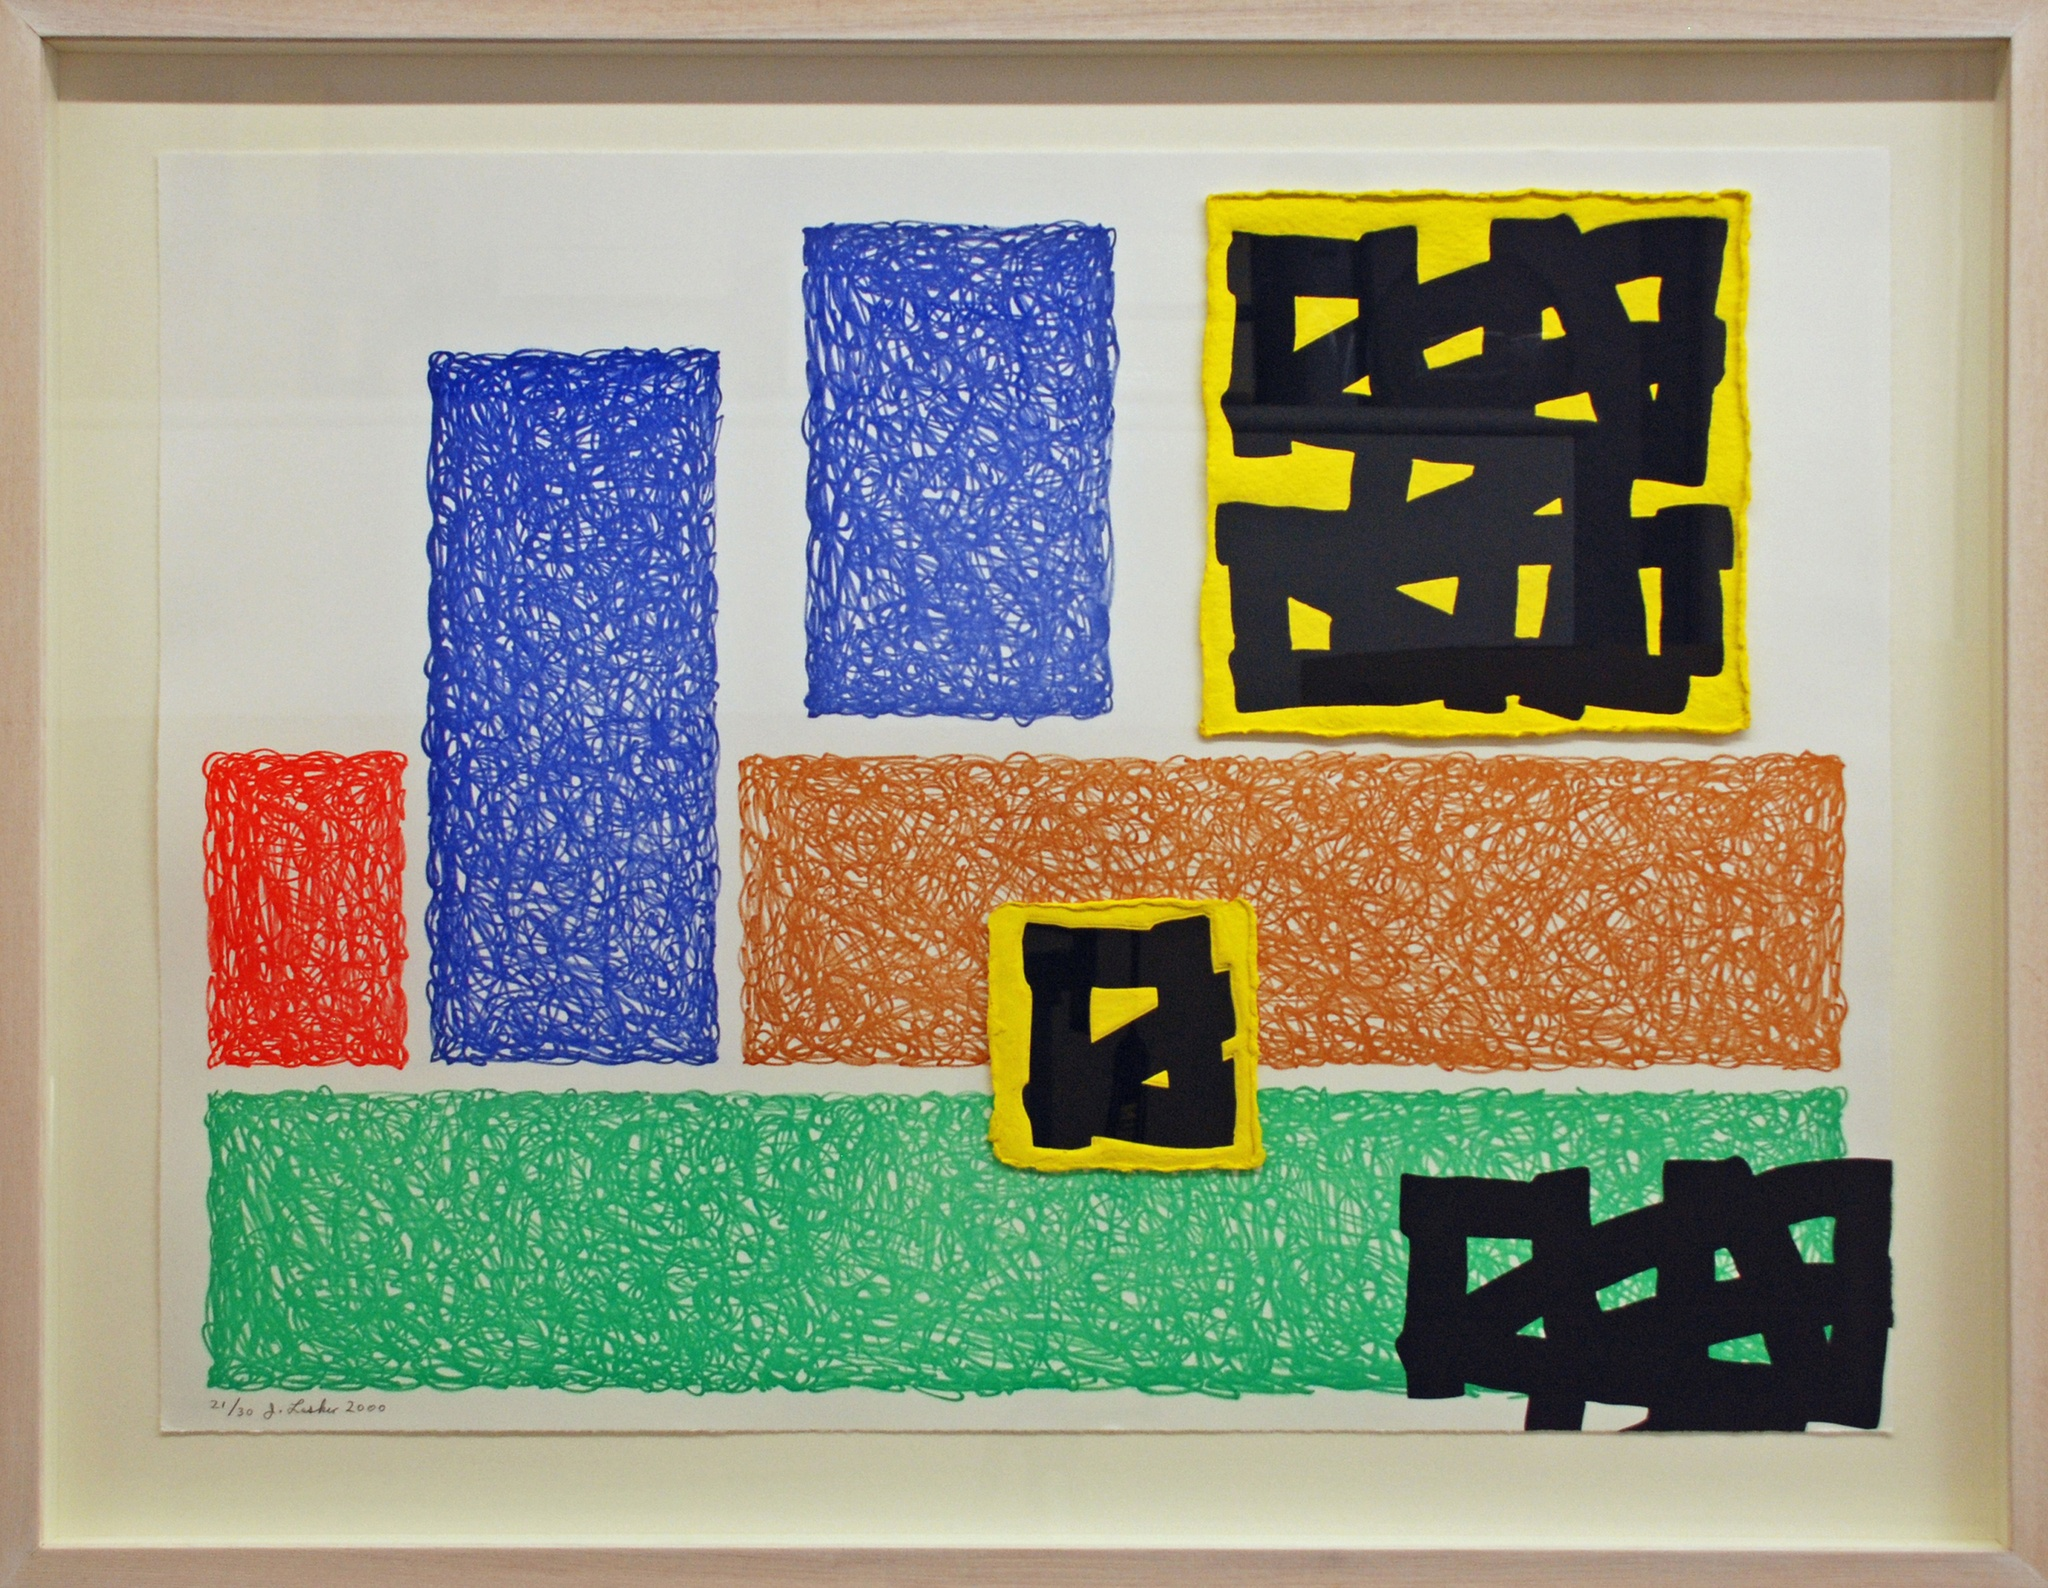 Jonathan Lasker, Town & Country